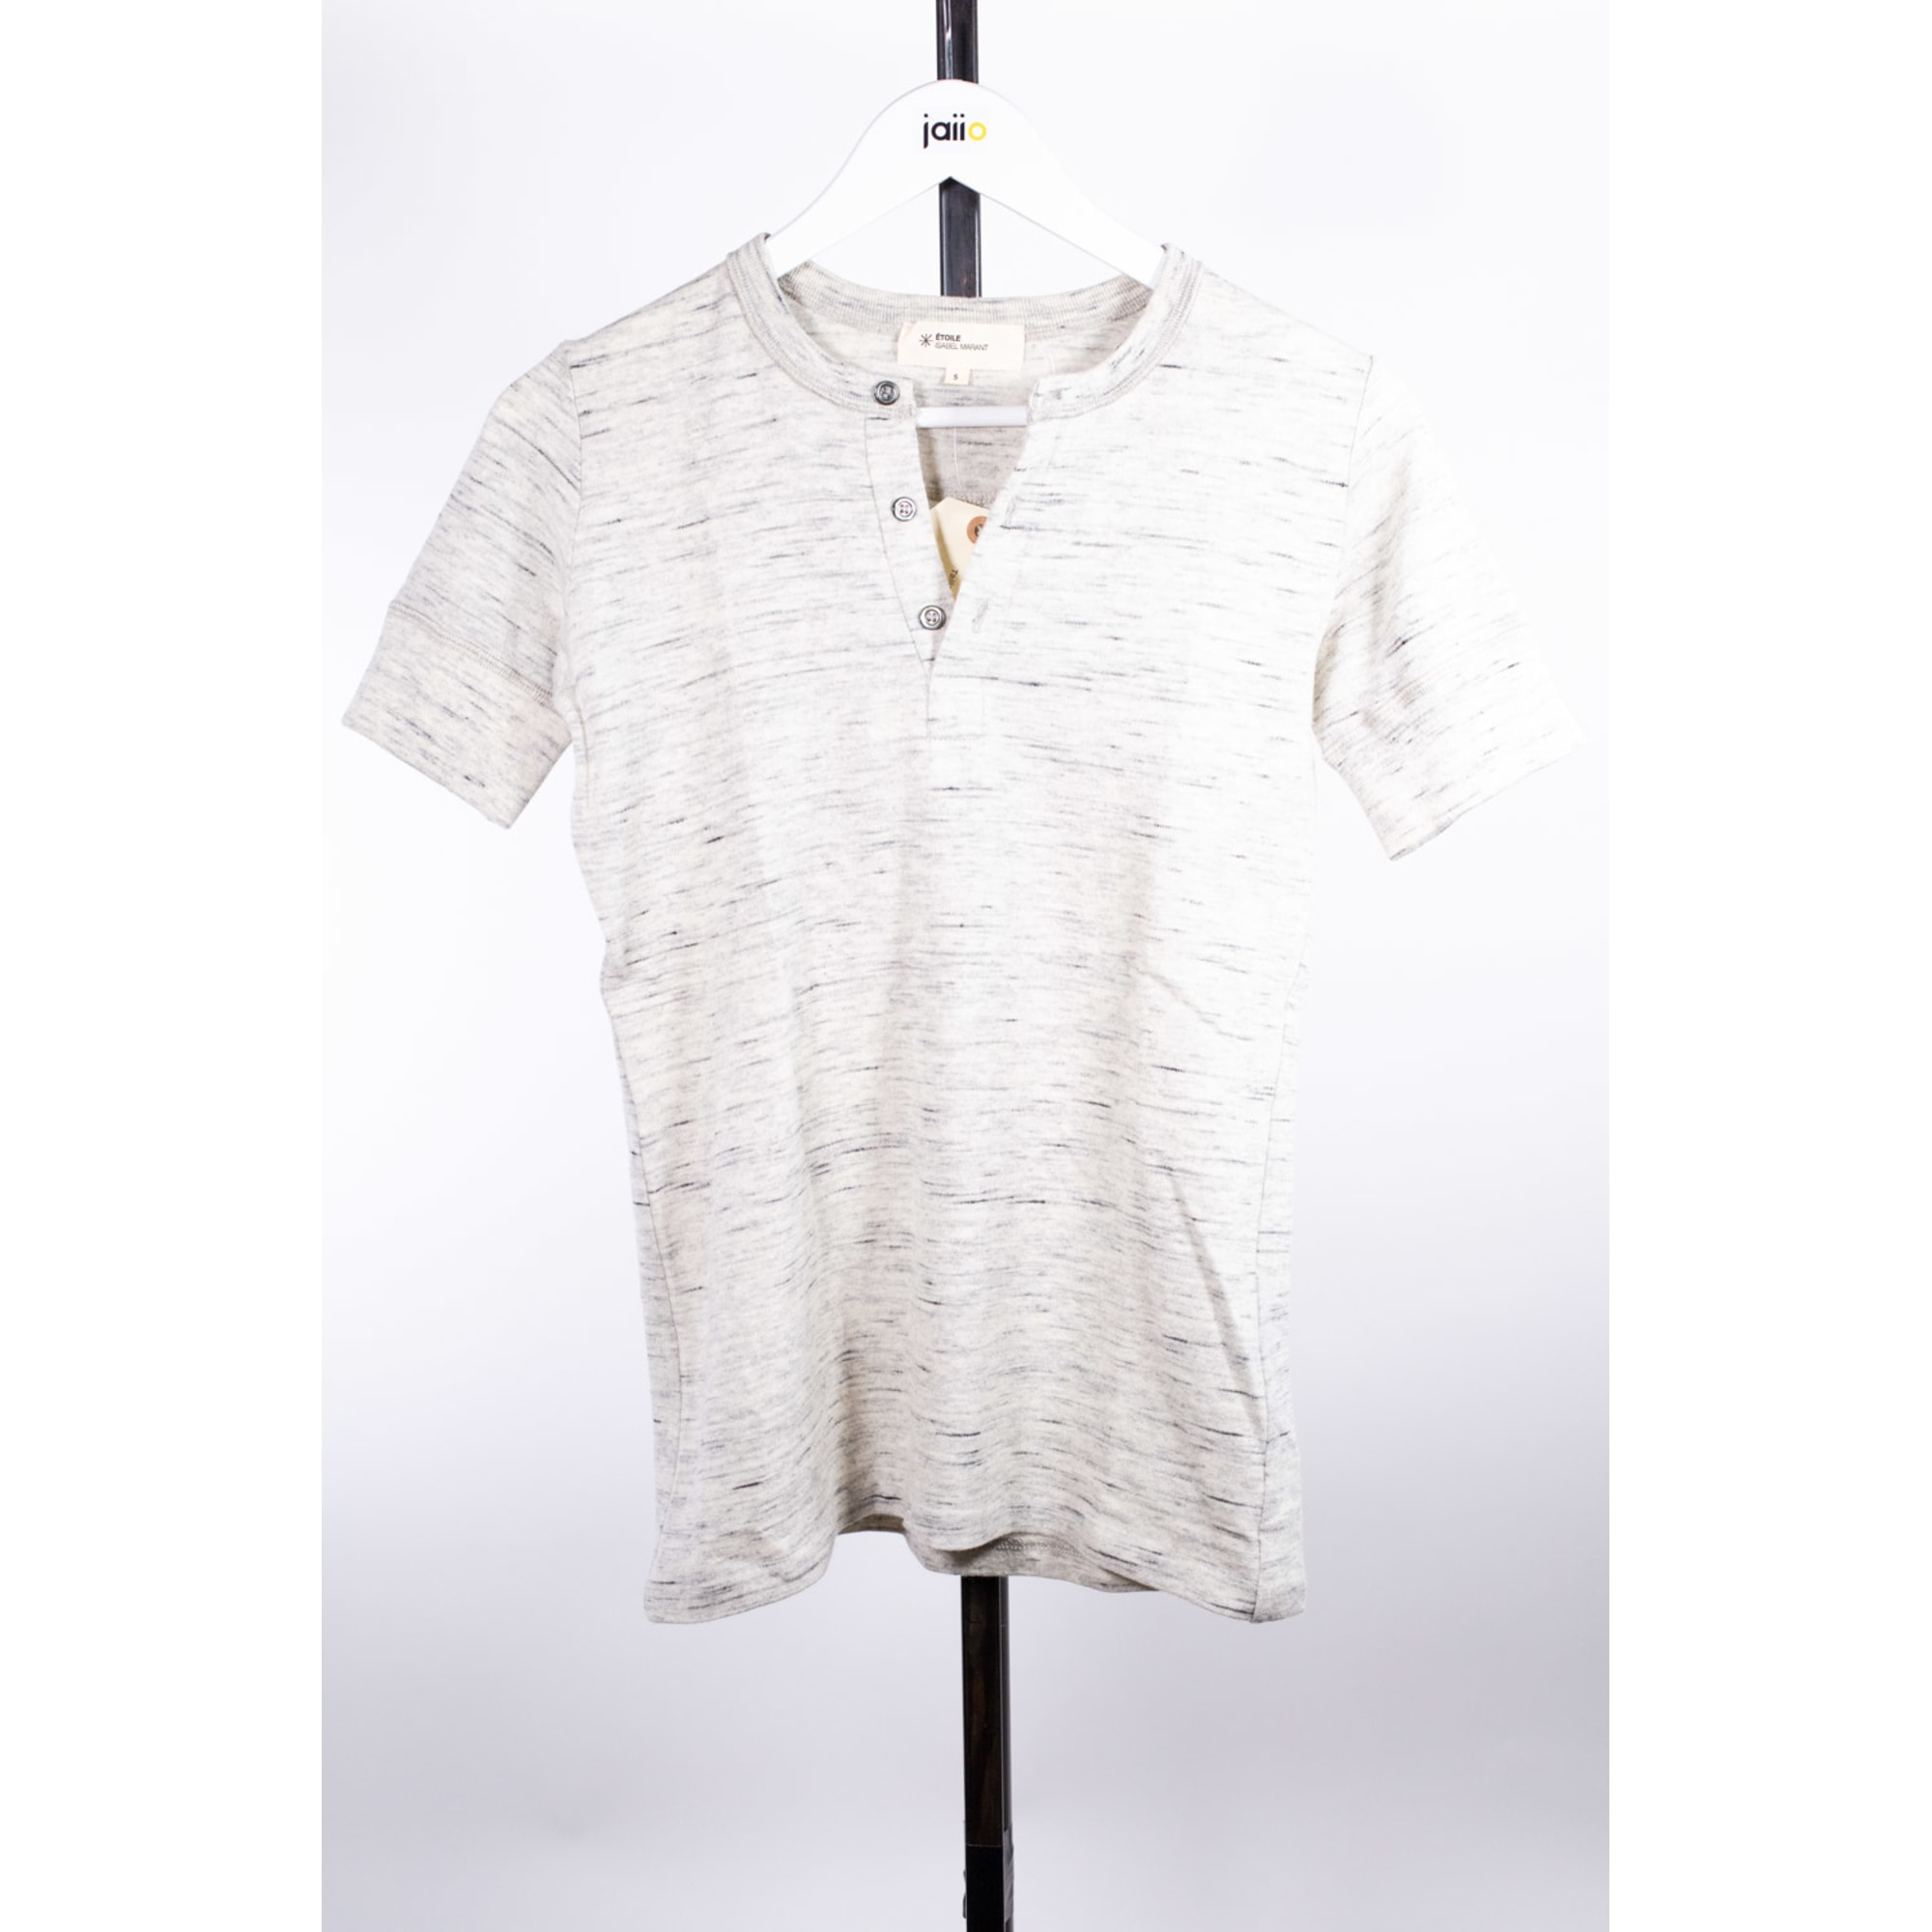 Top, tee-shirt ISABEL MARANT Gris, anthracite